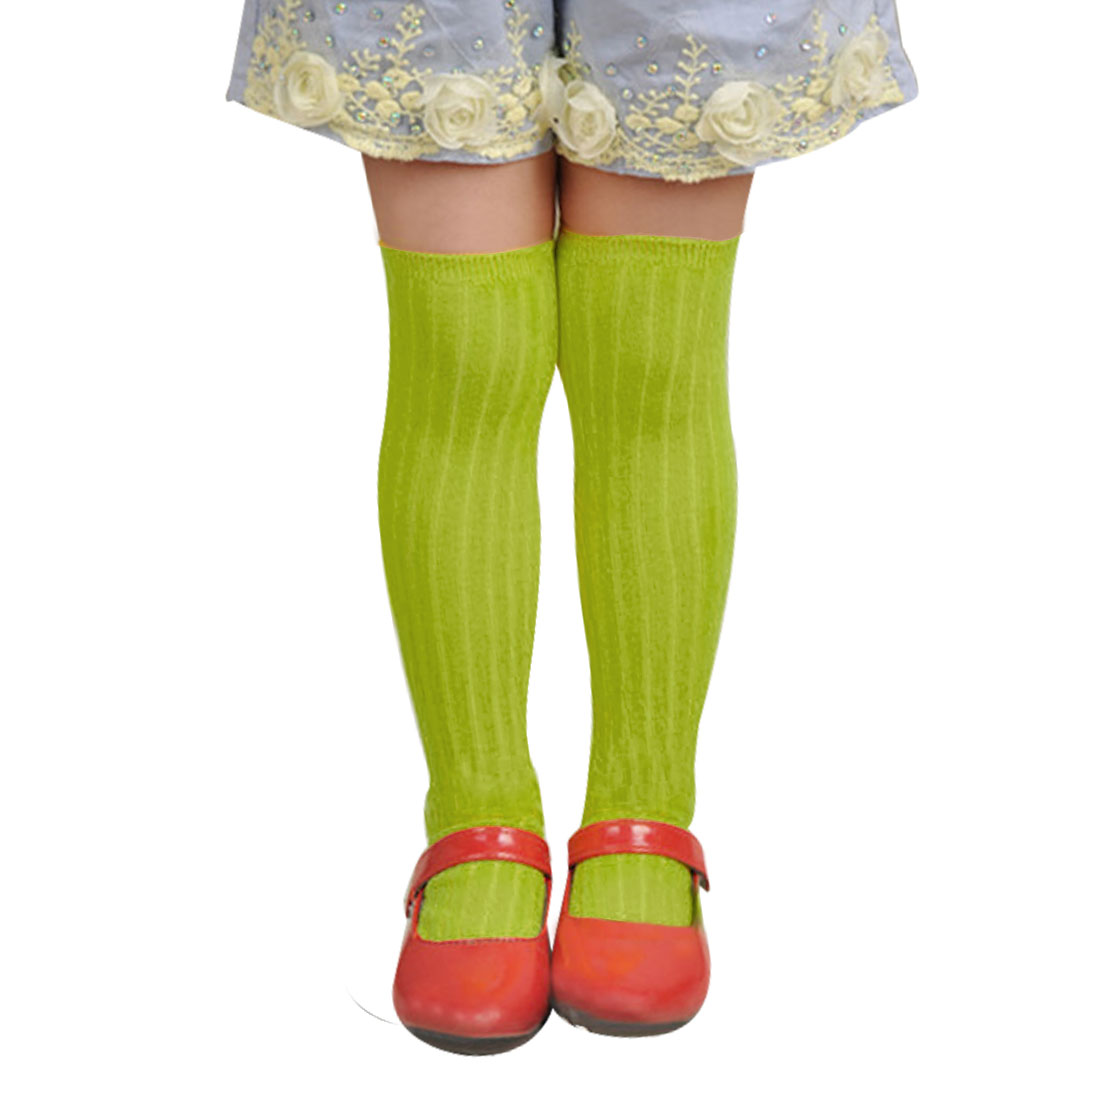 Elastic Cuff Ribbed Design Solid Grass Green Mid-Calf Length Socks for Girls